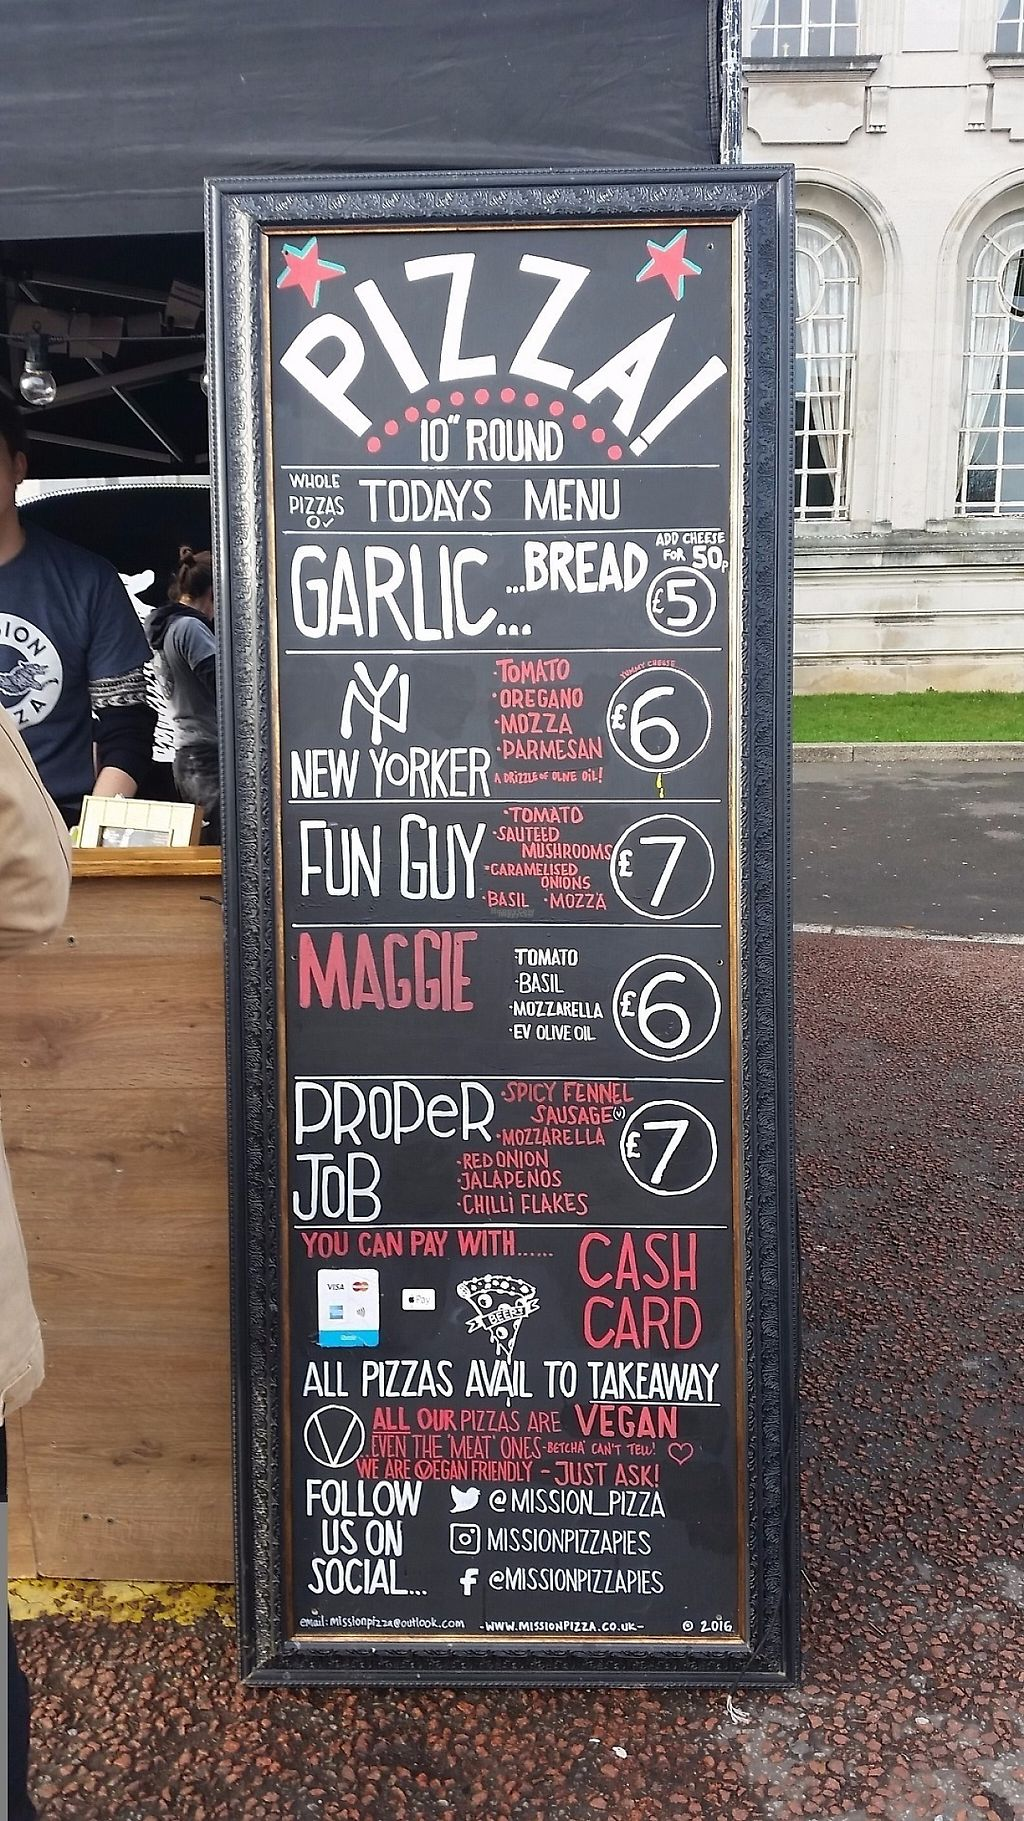 "Photo of Mission Pizza  by <a href=""/members/profile/konlish"">konlish</a> <br/>Menu at Cardiff Viva! Vegan Festival  <br/> February 18, 2017  - <a href='/contact/abuse/image/86659/227961'>Report</a>"